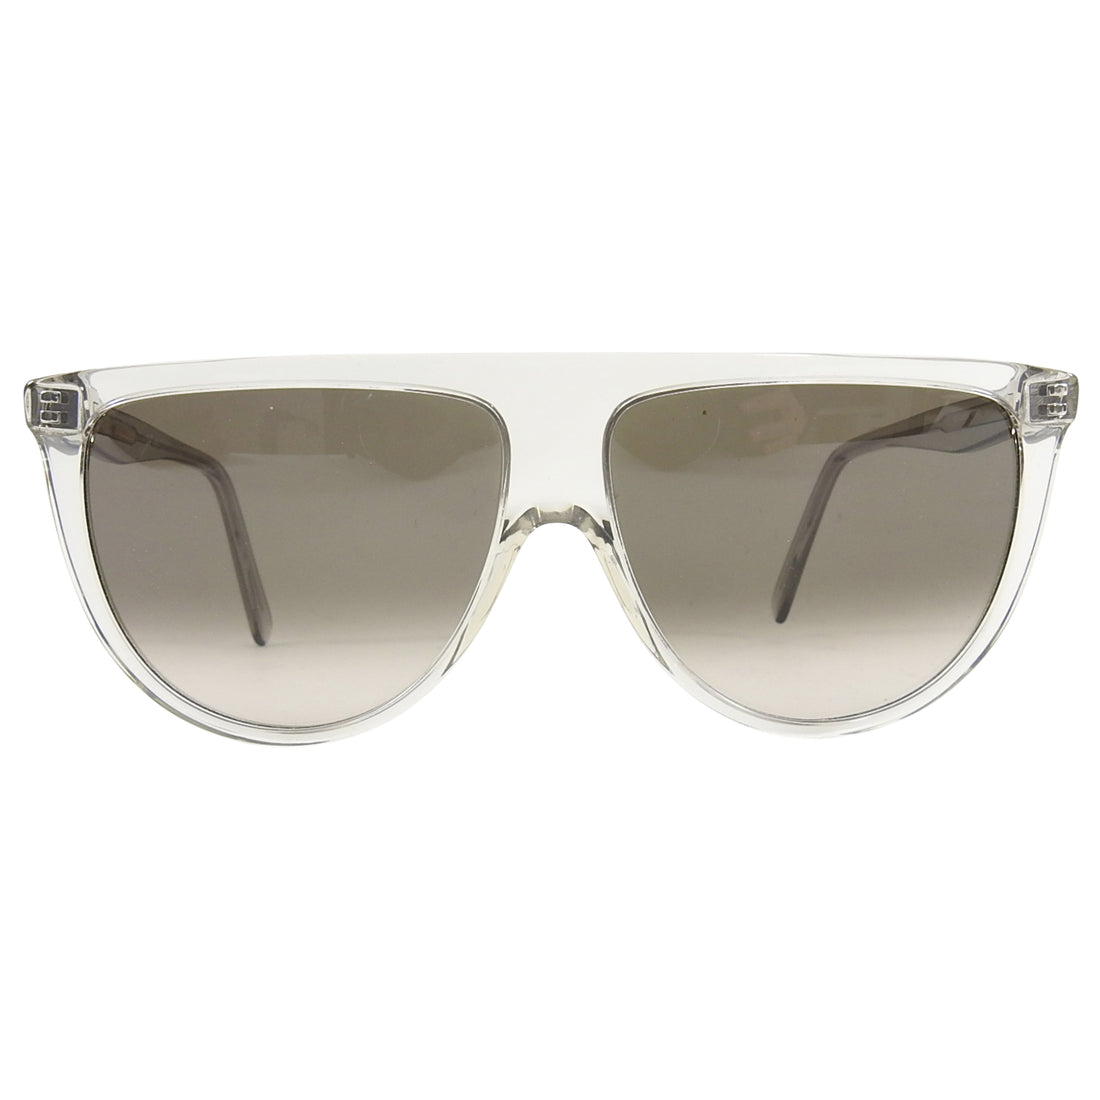 Celine Clear Vintage Style Sunglasses CL41435